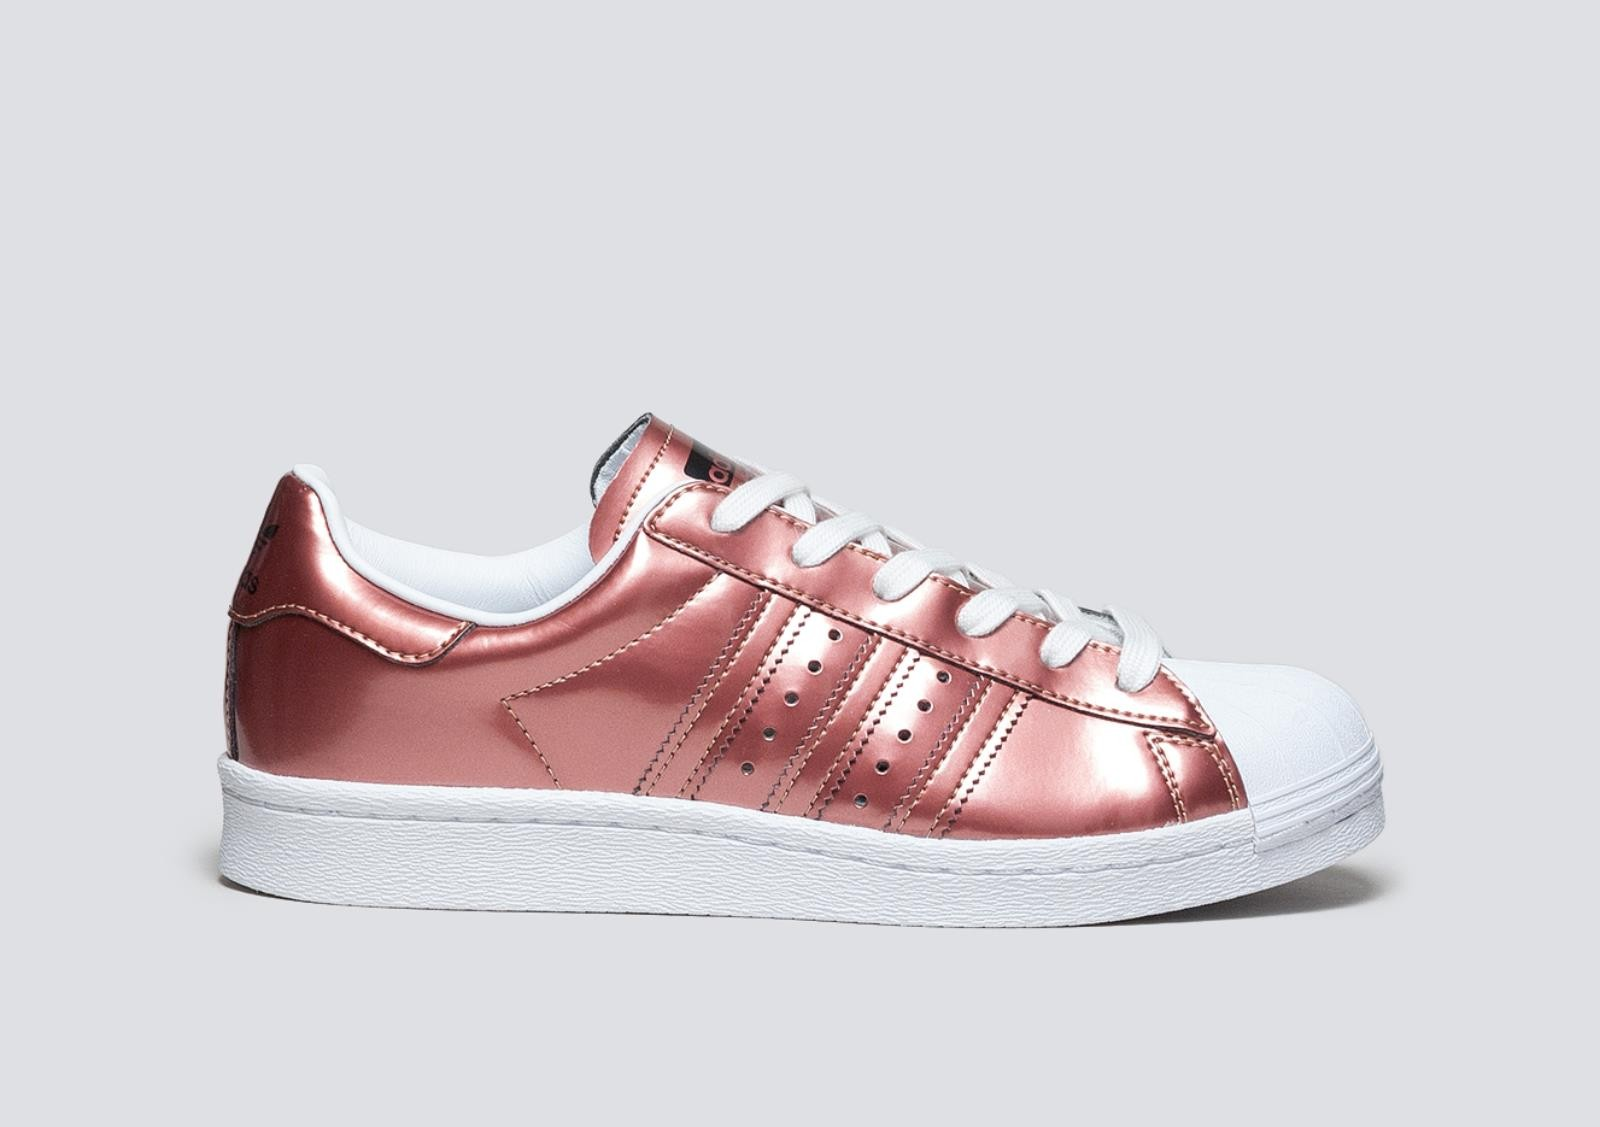 Scarpe donna ADIDAS SUPERSTAR BOOST in pelle lucida rosa antico BB2270